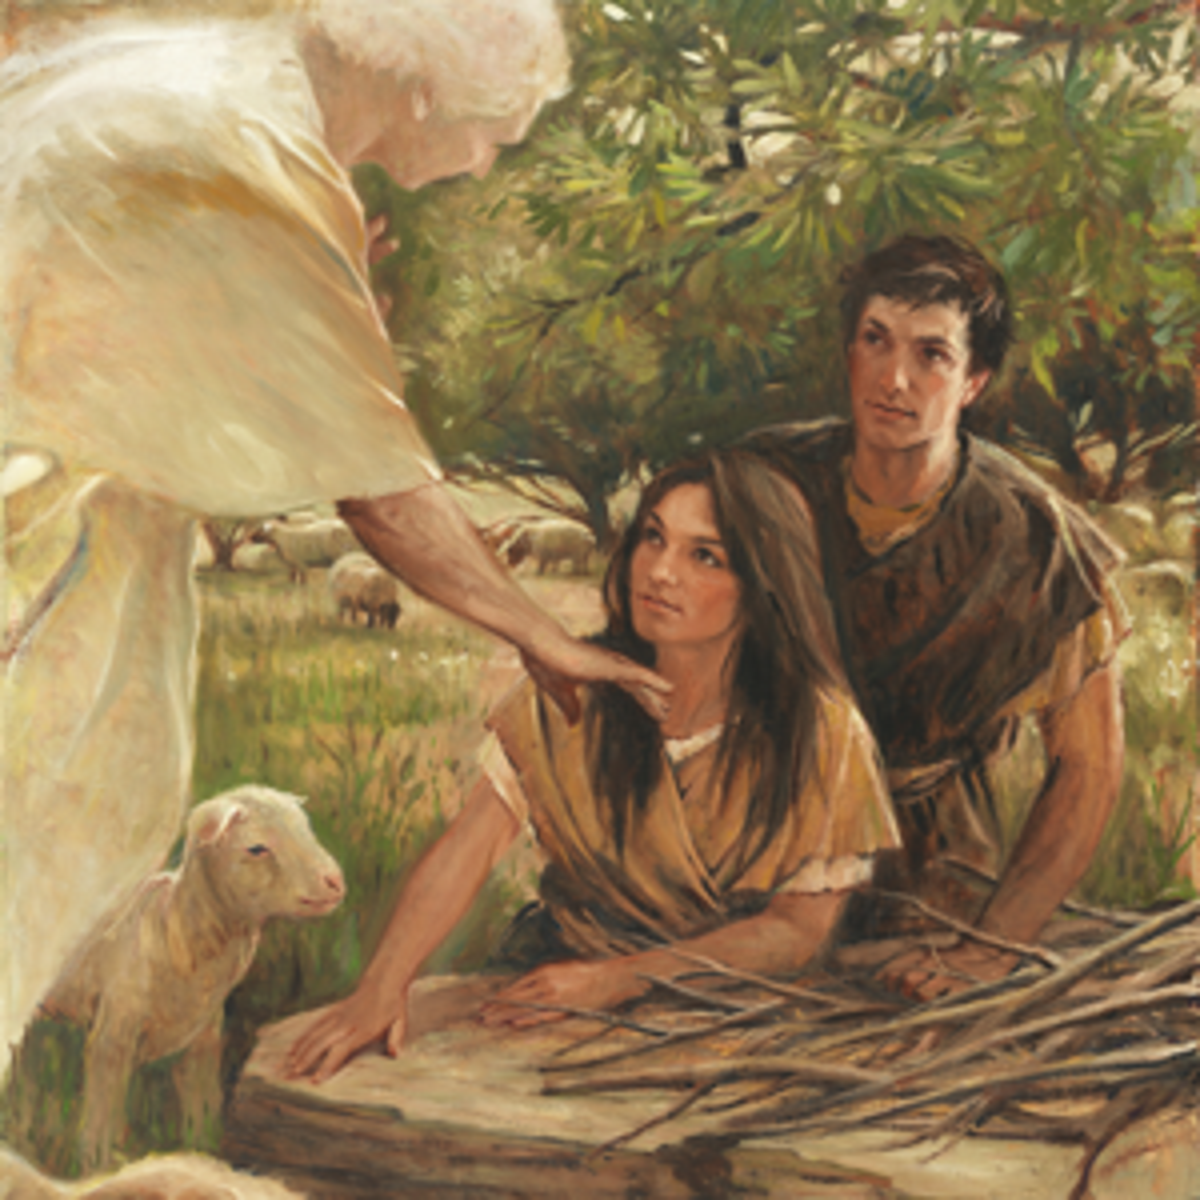 An Angel appears to Adam and Eve